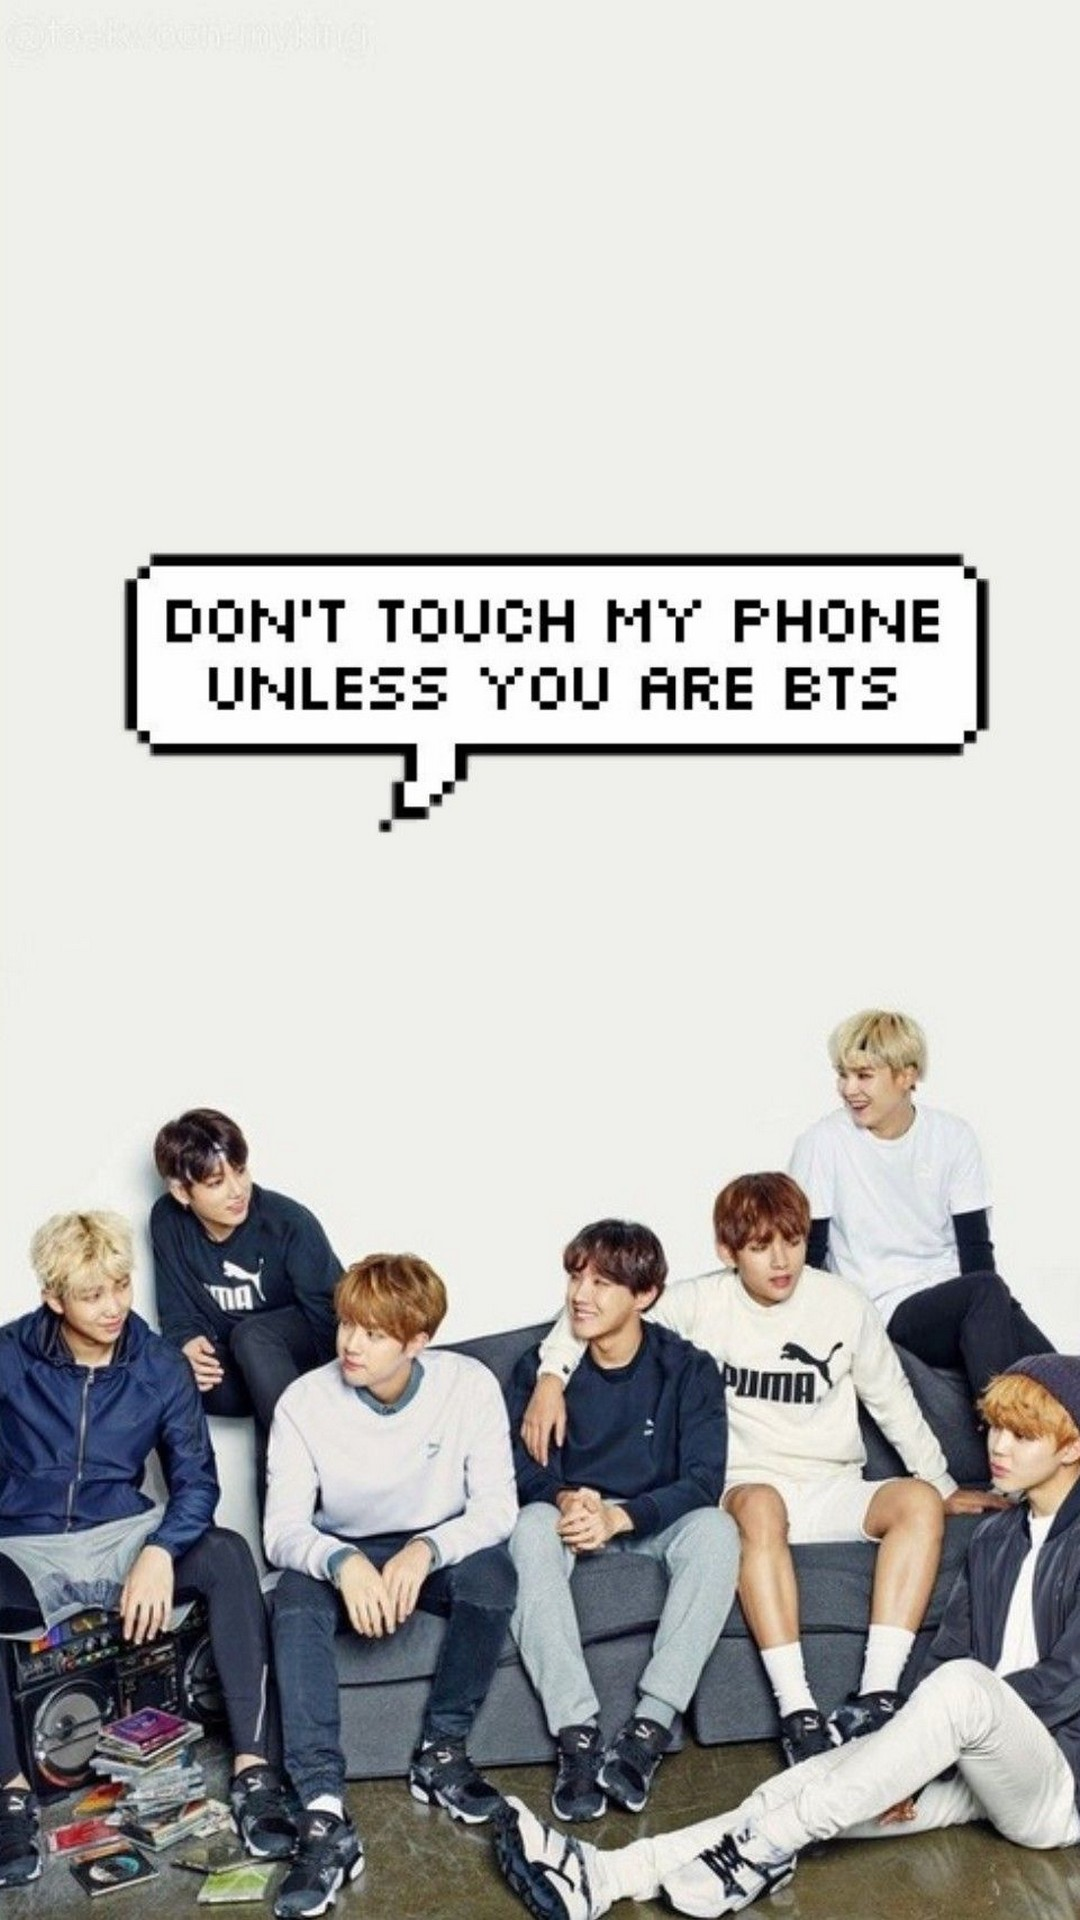 BTS iPhone Home Screen Wallpaper   2020 Cute iPhone Wallpaper 1080x1920